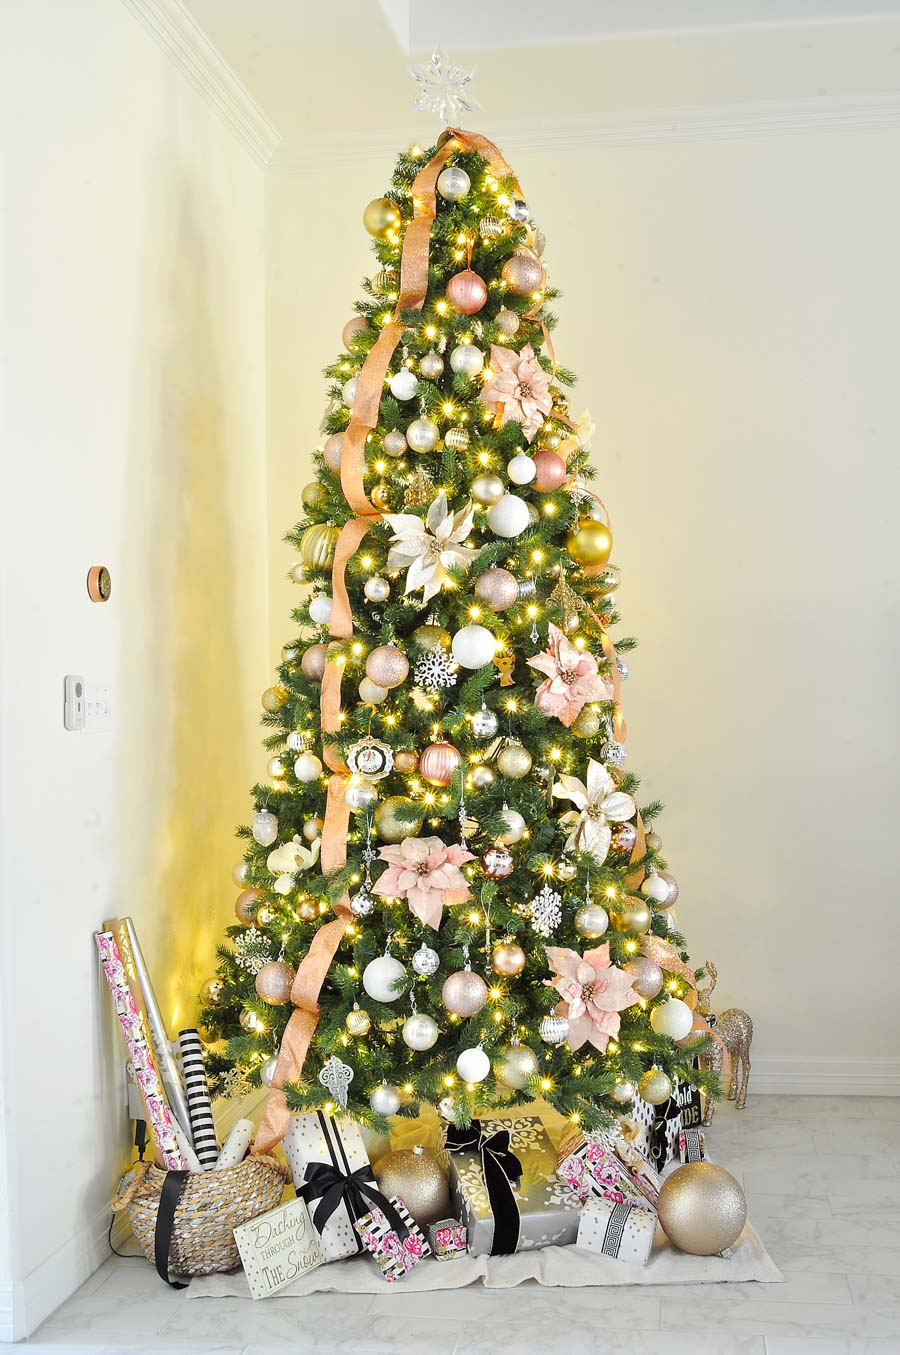 Blush pink Christmas tree decorated with gold, silver, and white ornaments, pink poinsettias and glittery ribbon. What a stunning tree!